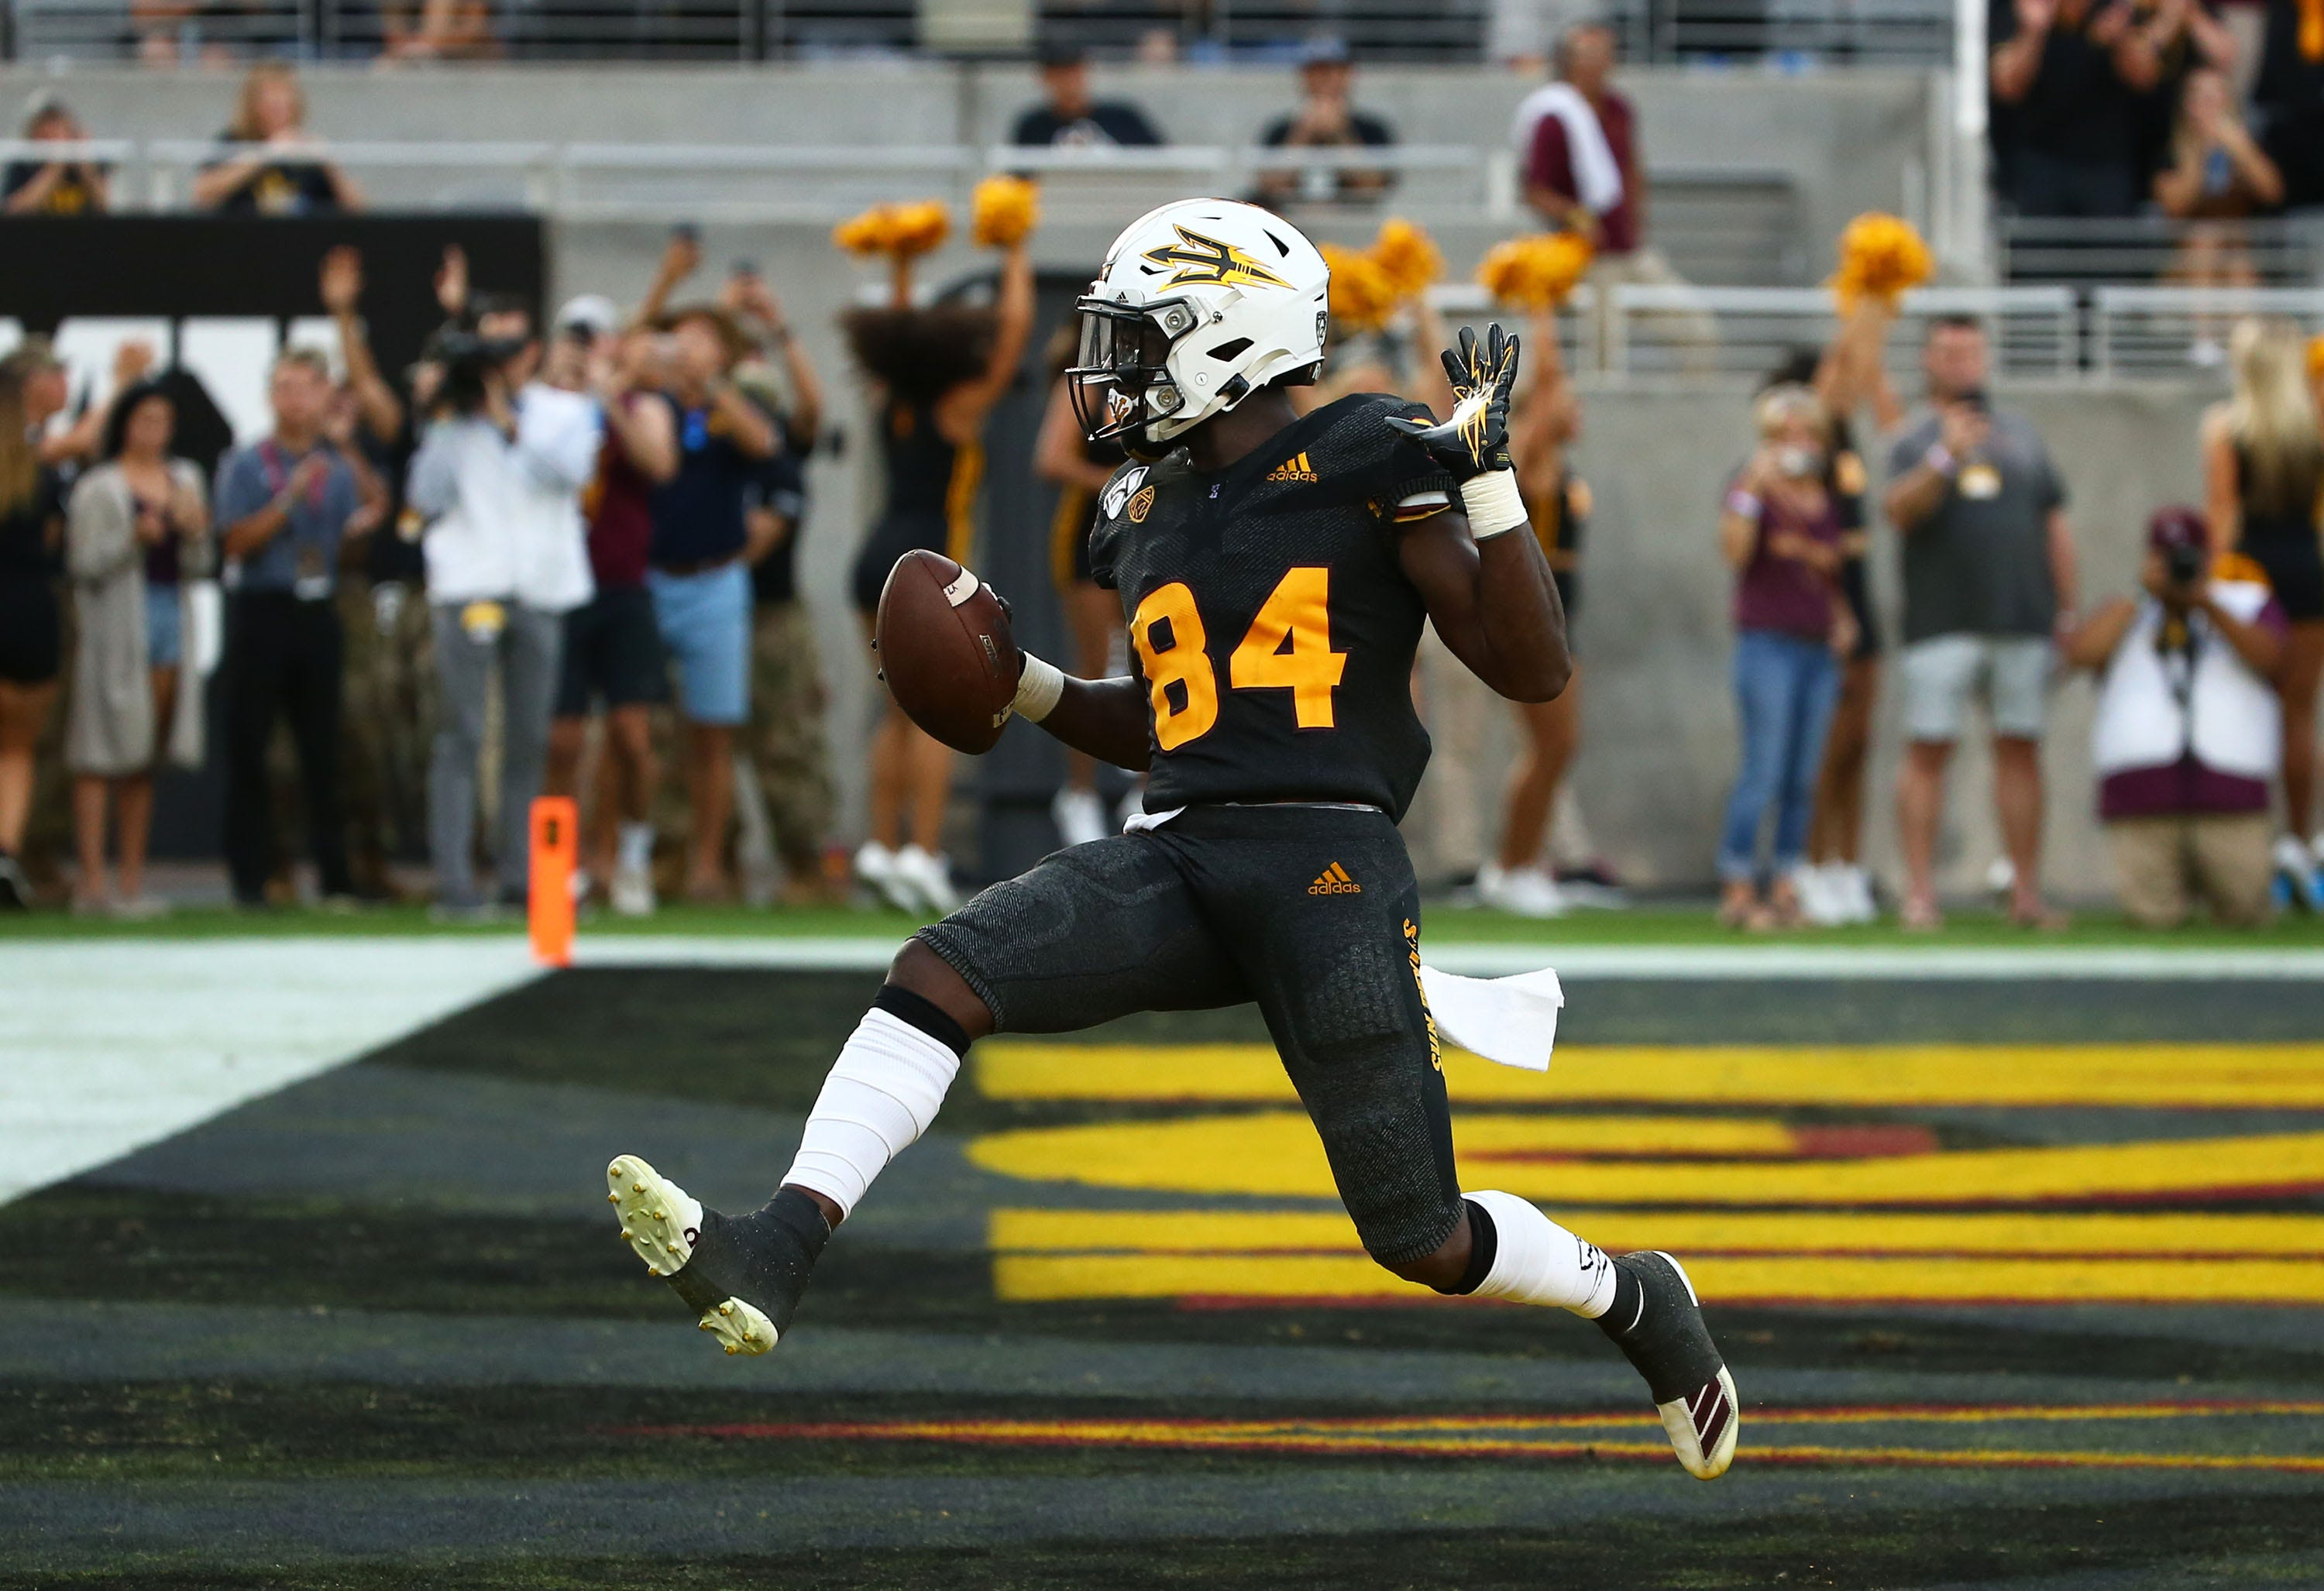 ASU receiver Frank Darby officially declares for NFL draft